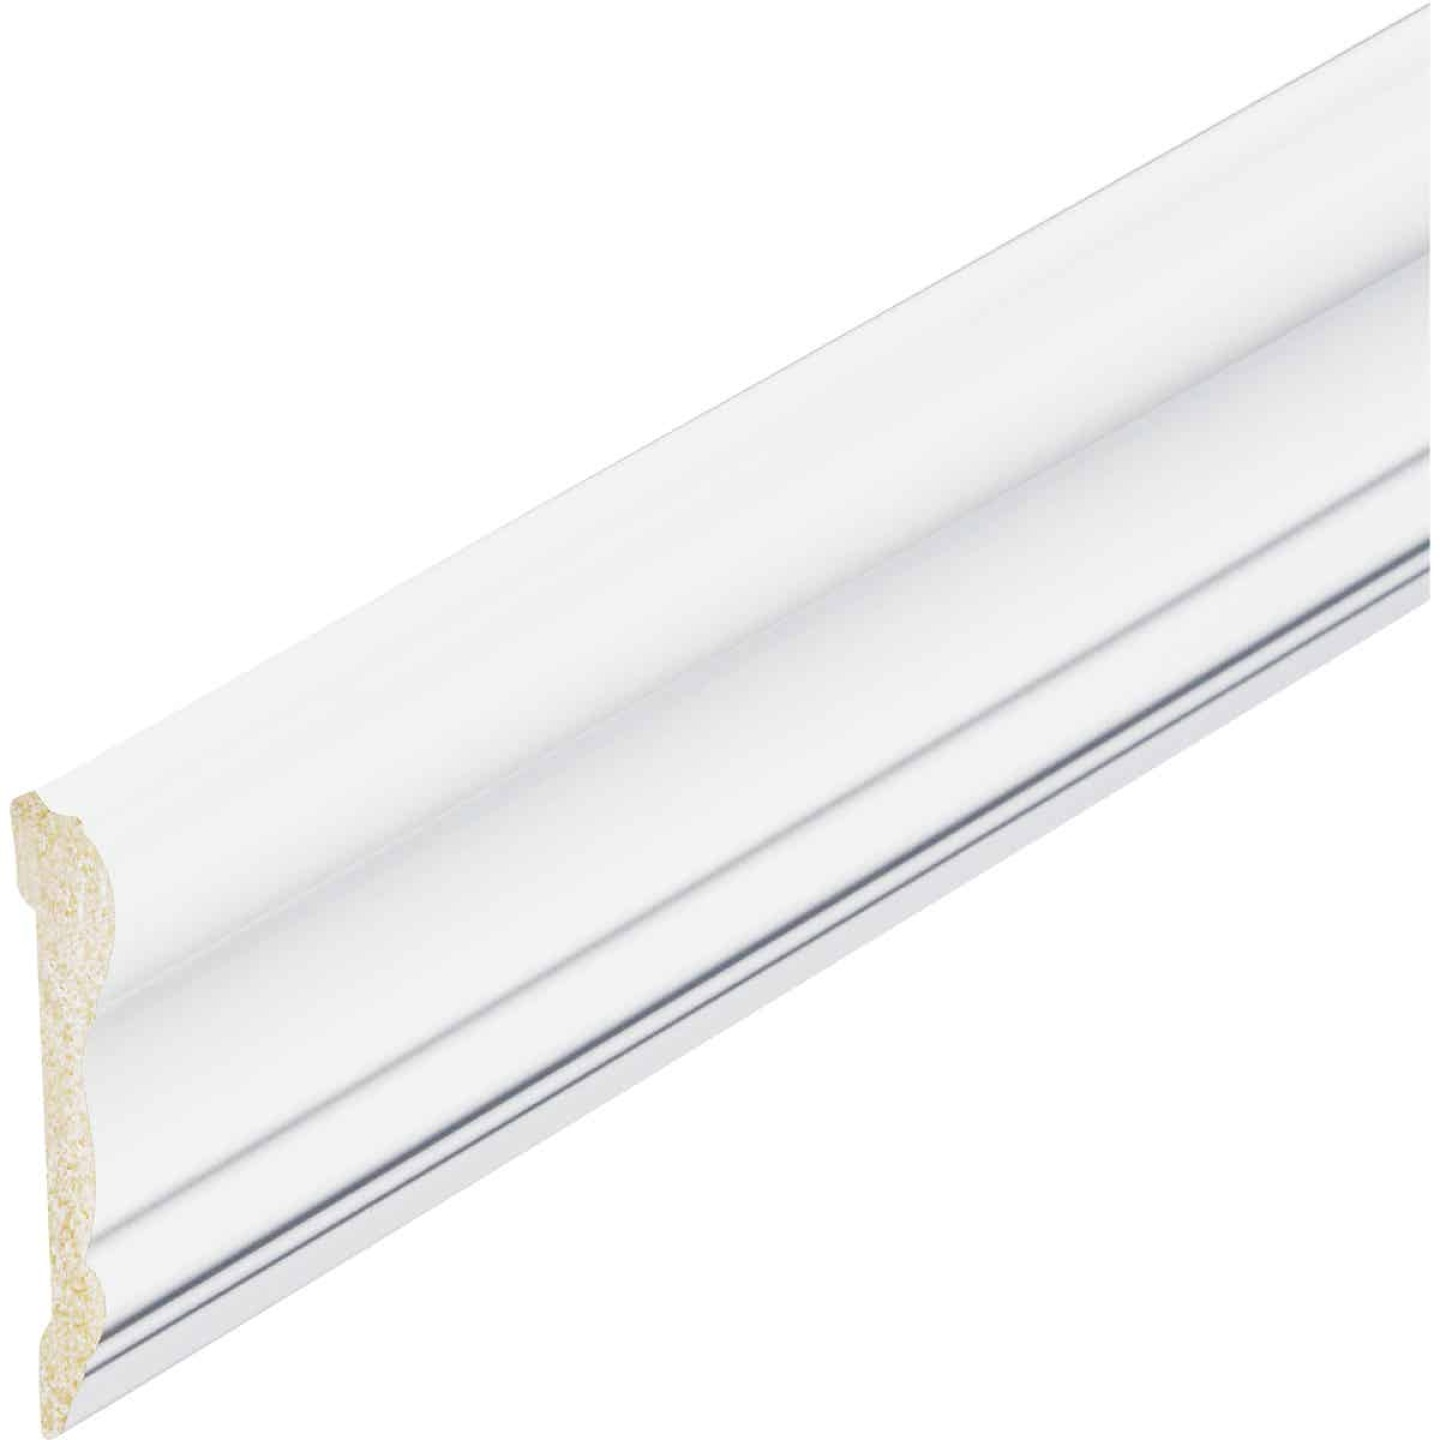 Inteplast Building Products 5/8 In. x 2-5/8 In. x 8 Ft. Crystal White Polystyrene Chair Rail Molding Image 2